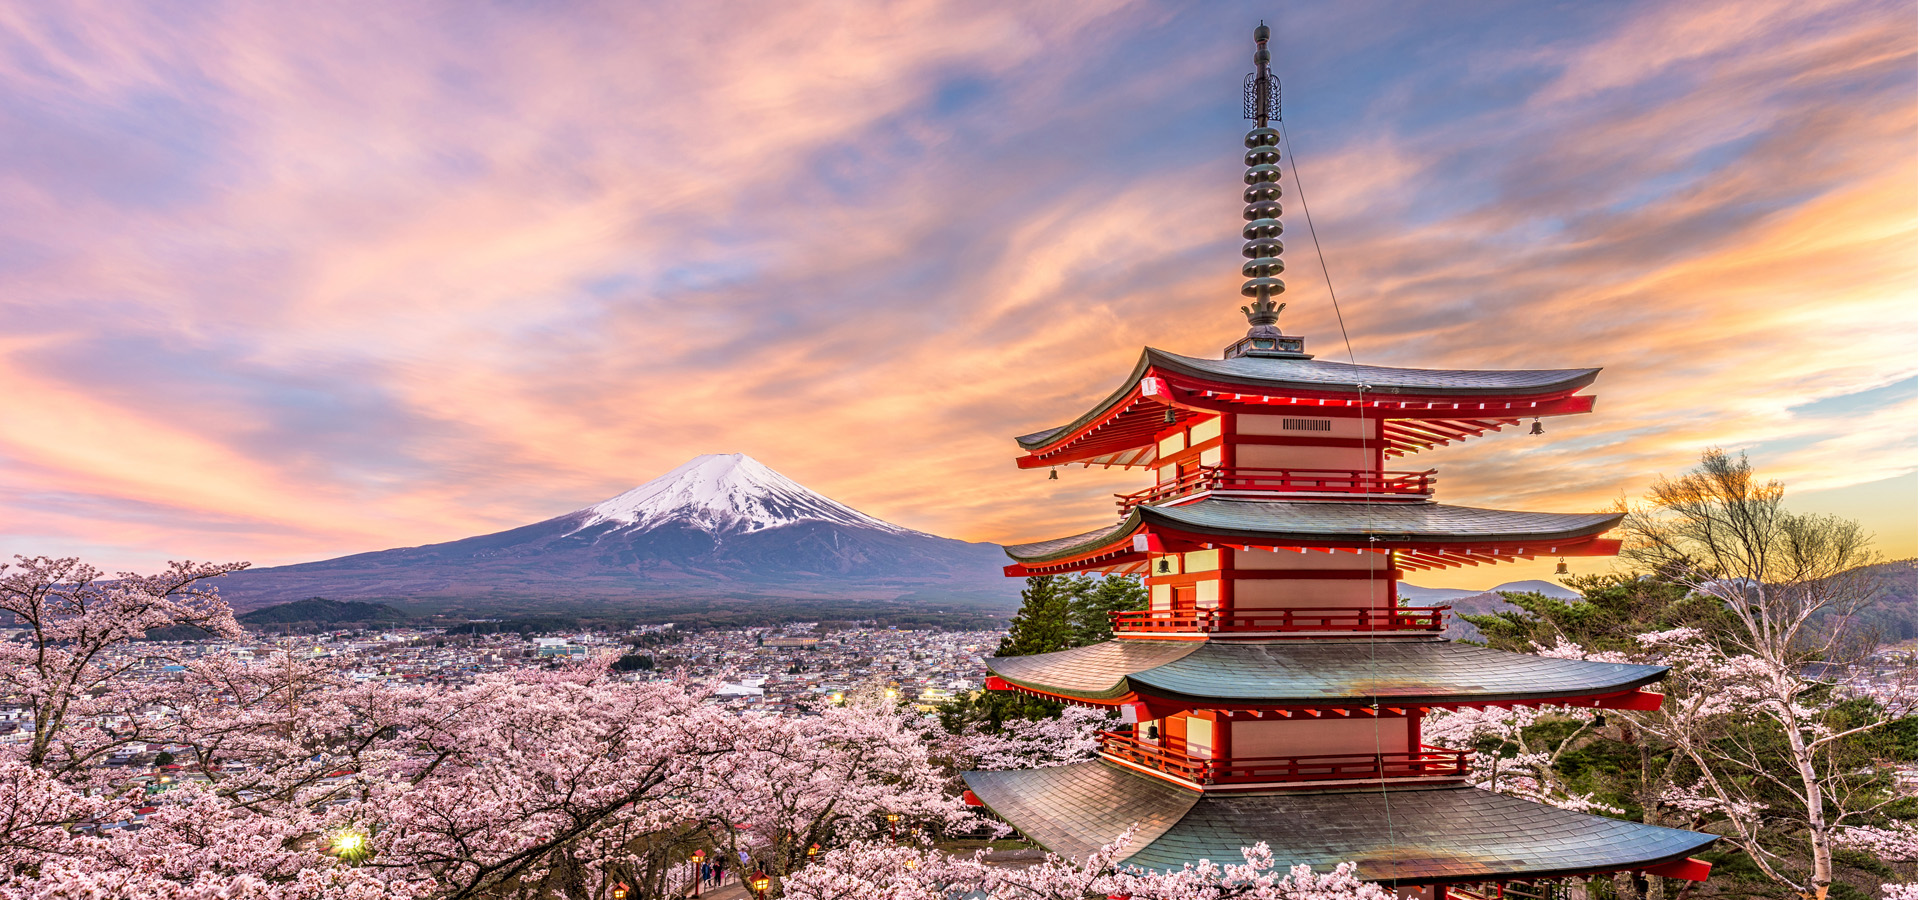 The Best Seasons for Cruising in Japan